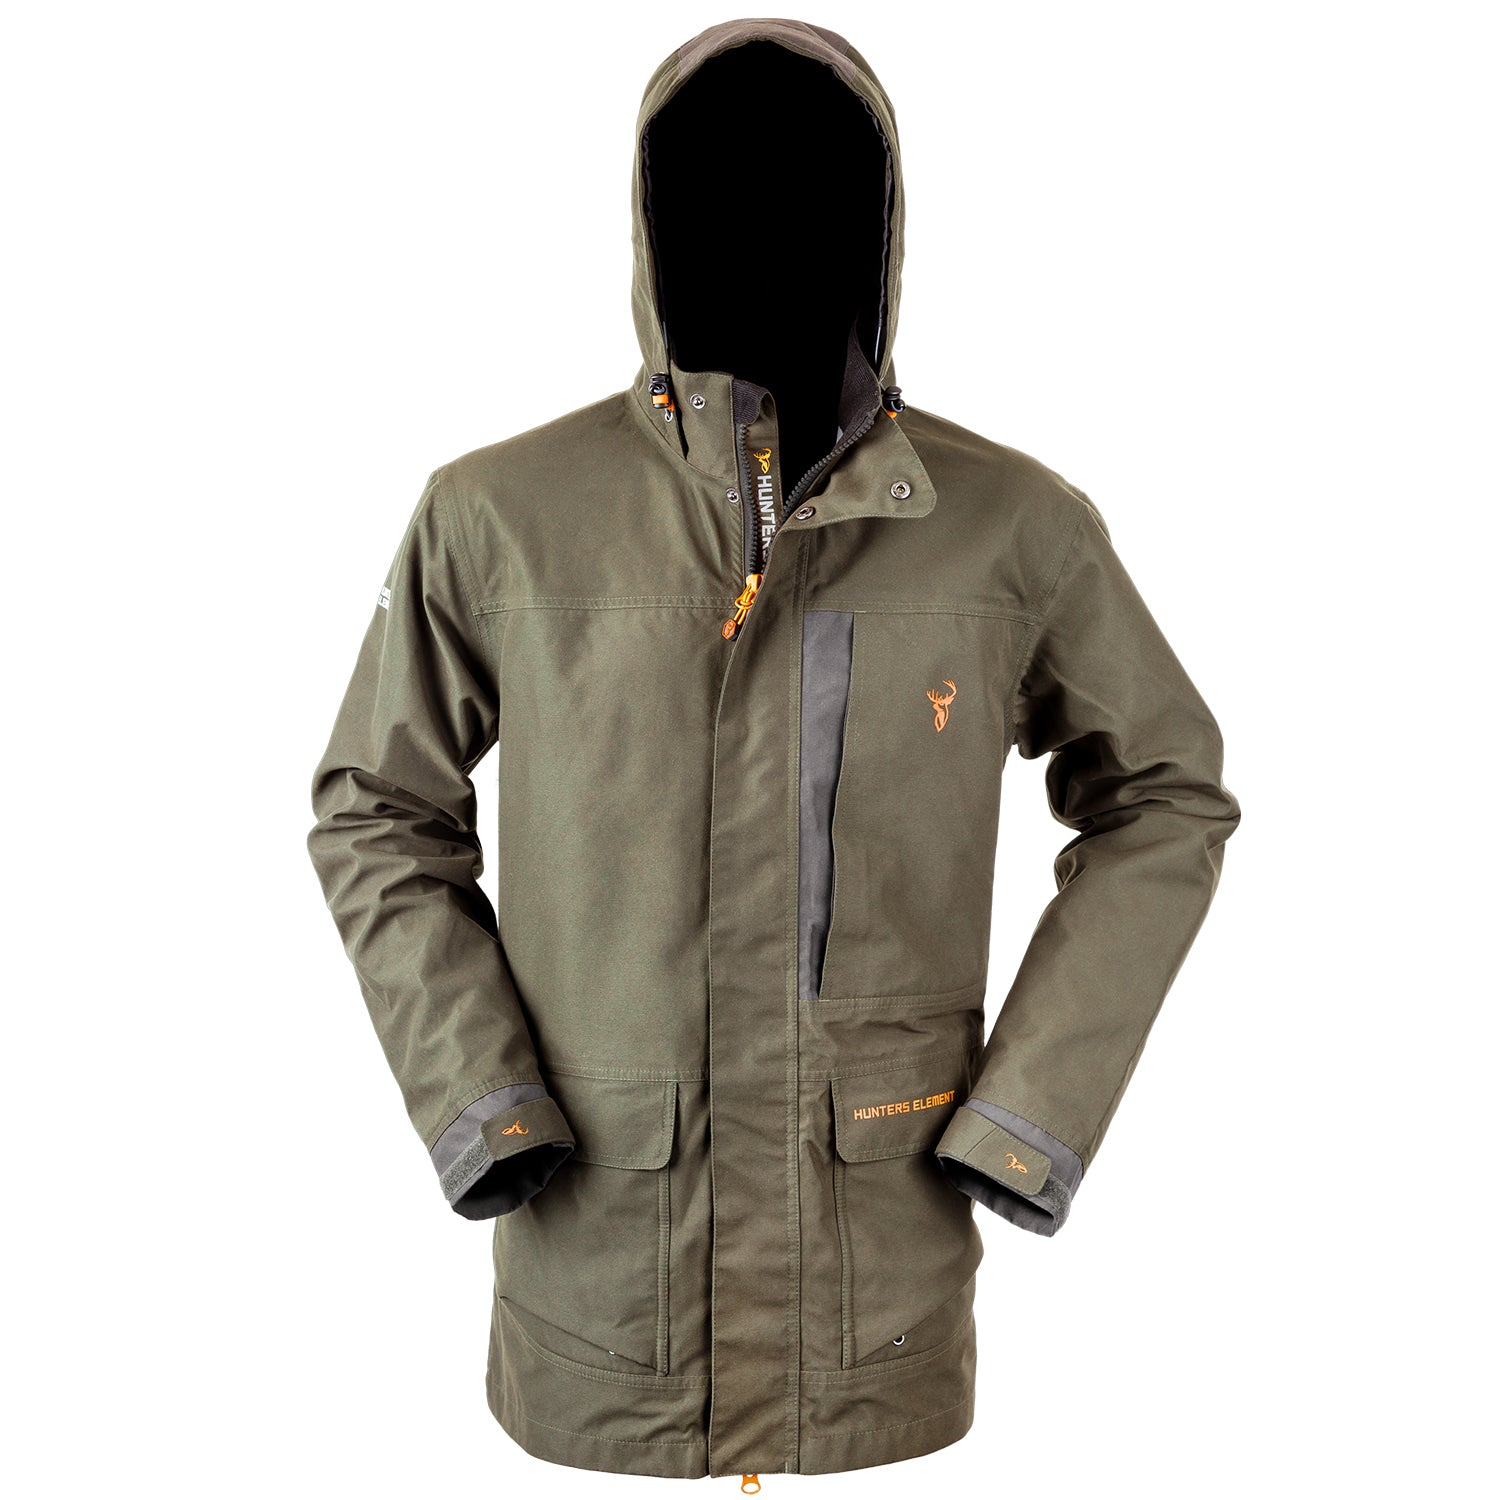 Hunters Element Downpour Elite Jacket - Forest Green